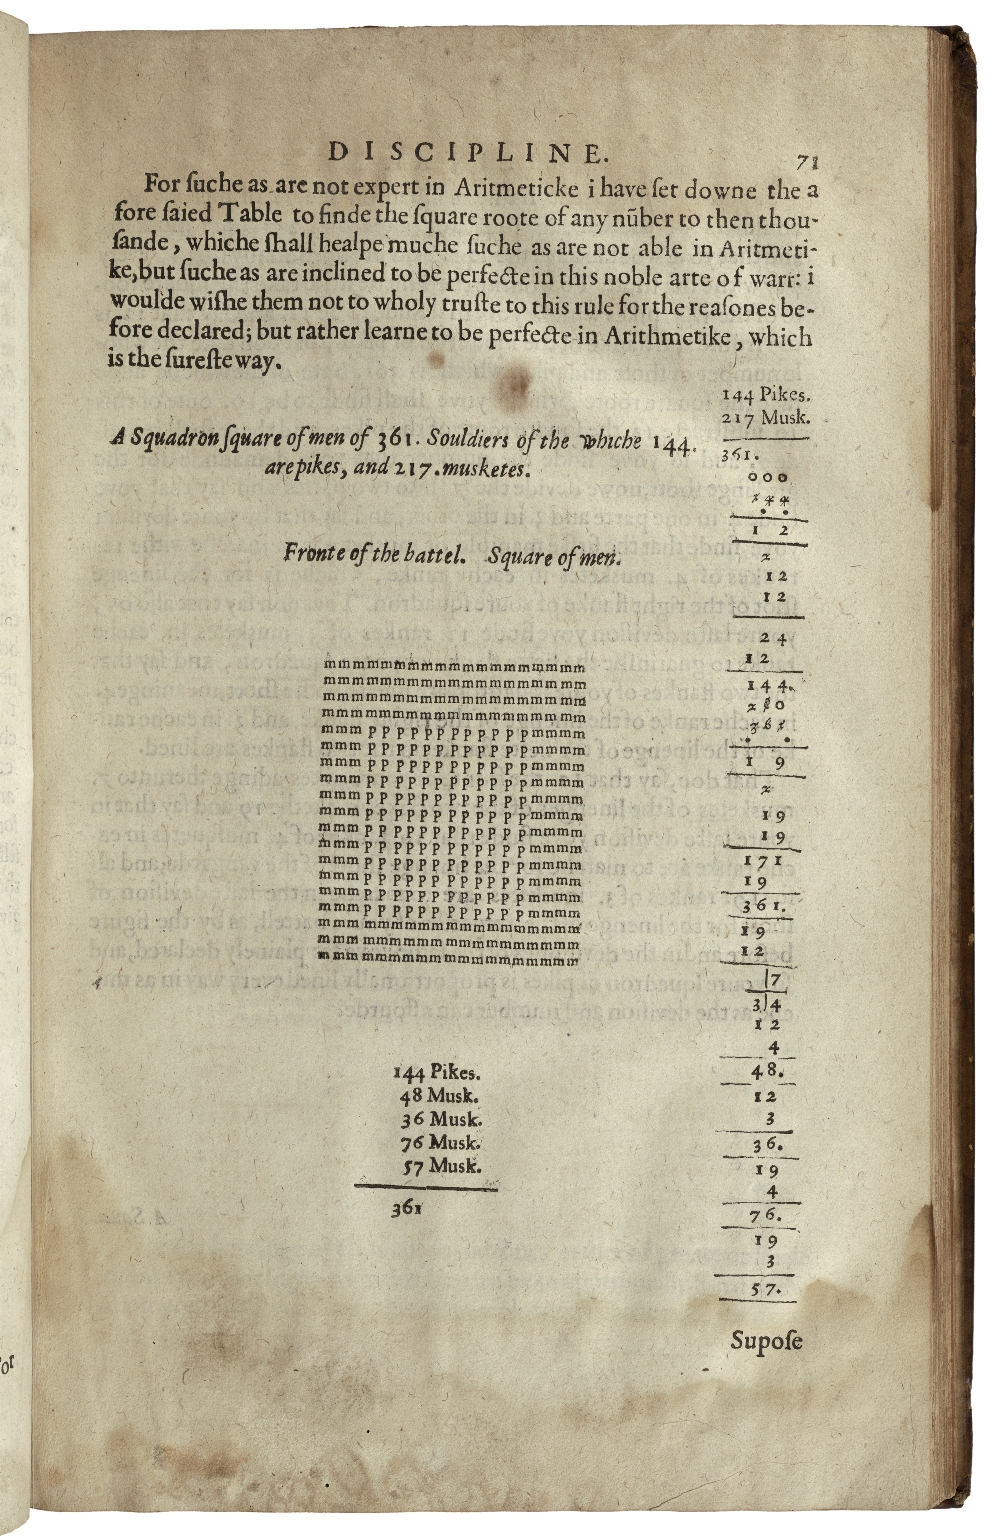 A discourse of military discipline, devided into three boockes, declaringe the partes and sufficiencie ordained in a private souldier, and in each officer; servinge in the infantery, till the election and office of the captaine generall; and the laste booke treatinge of fire-wourckes of rare executiones by sea and lande, as alsoe of firtifasions [sic]. Composed by Captaine Gerat Barry Irish.